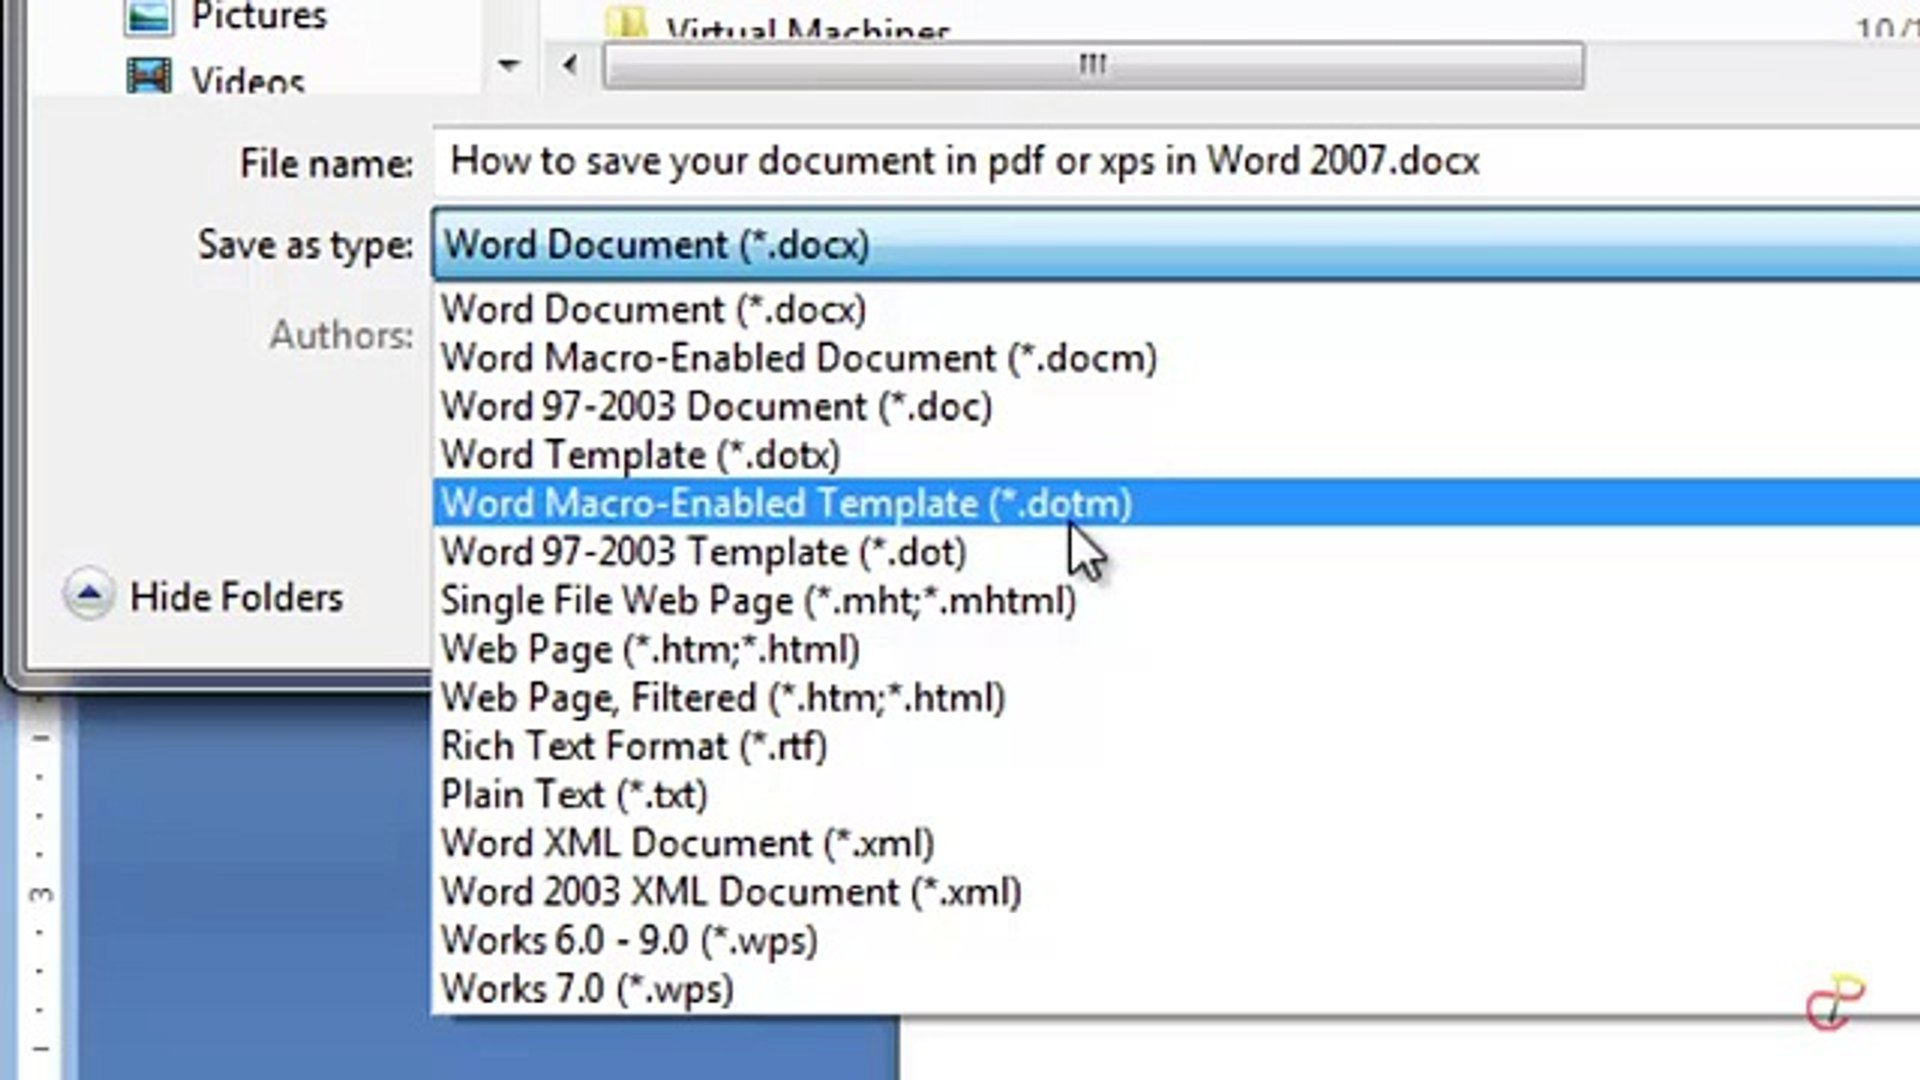 How To Convert Or Save Your Office 2007 Word Documents To PDF Or XPS